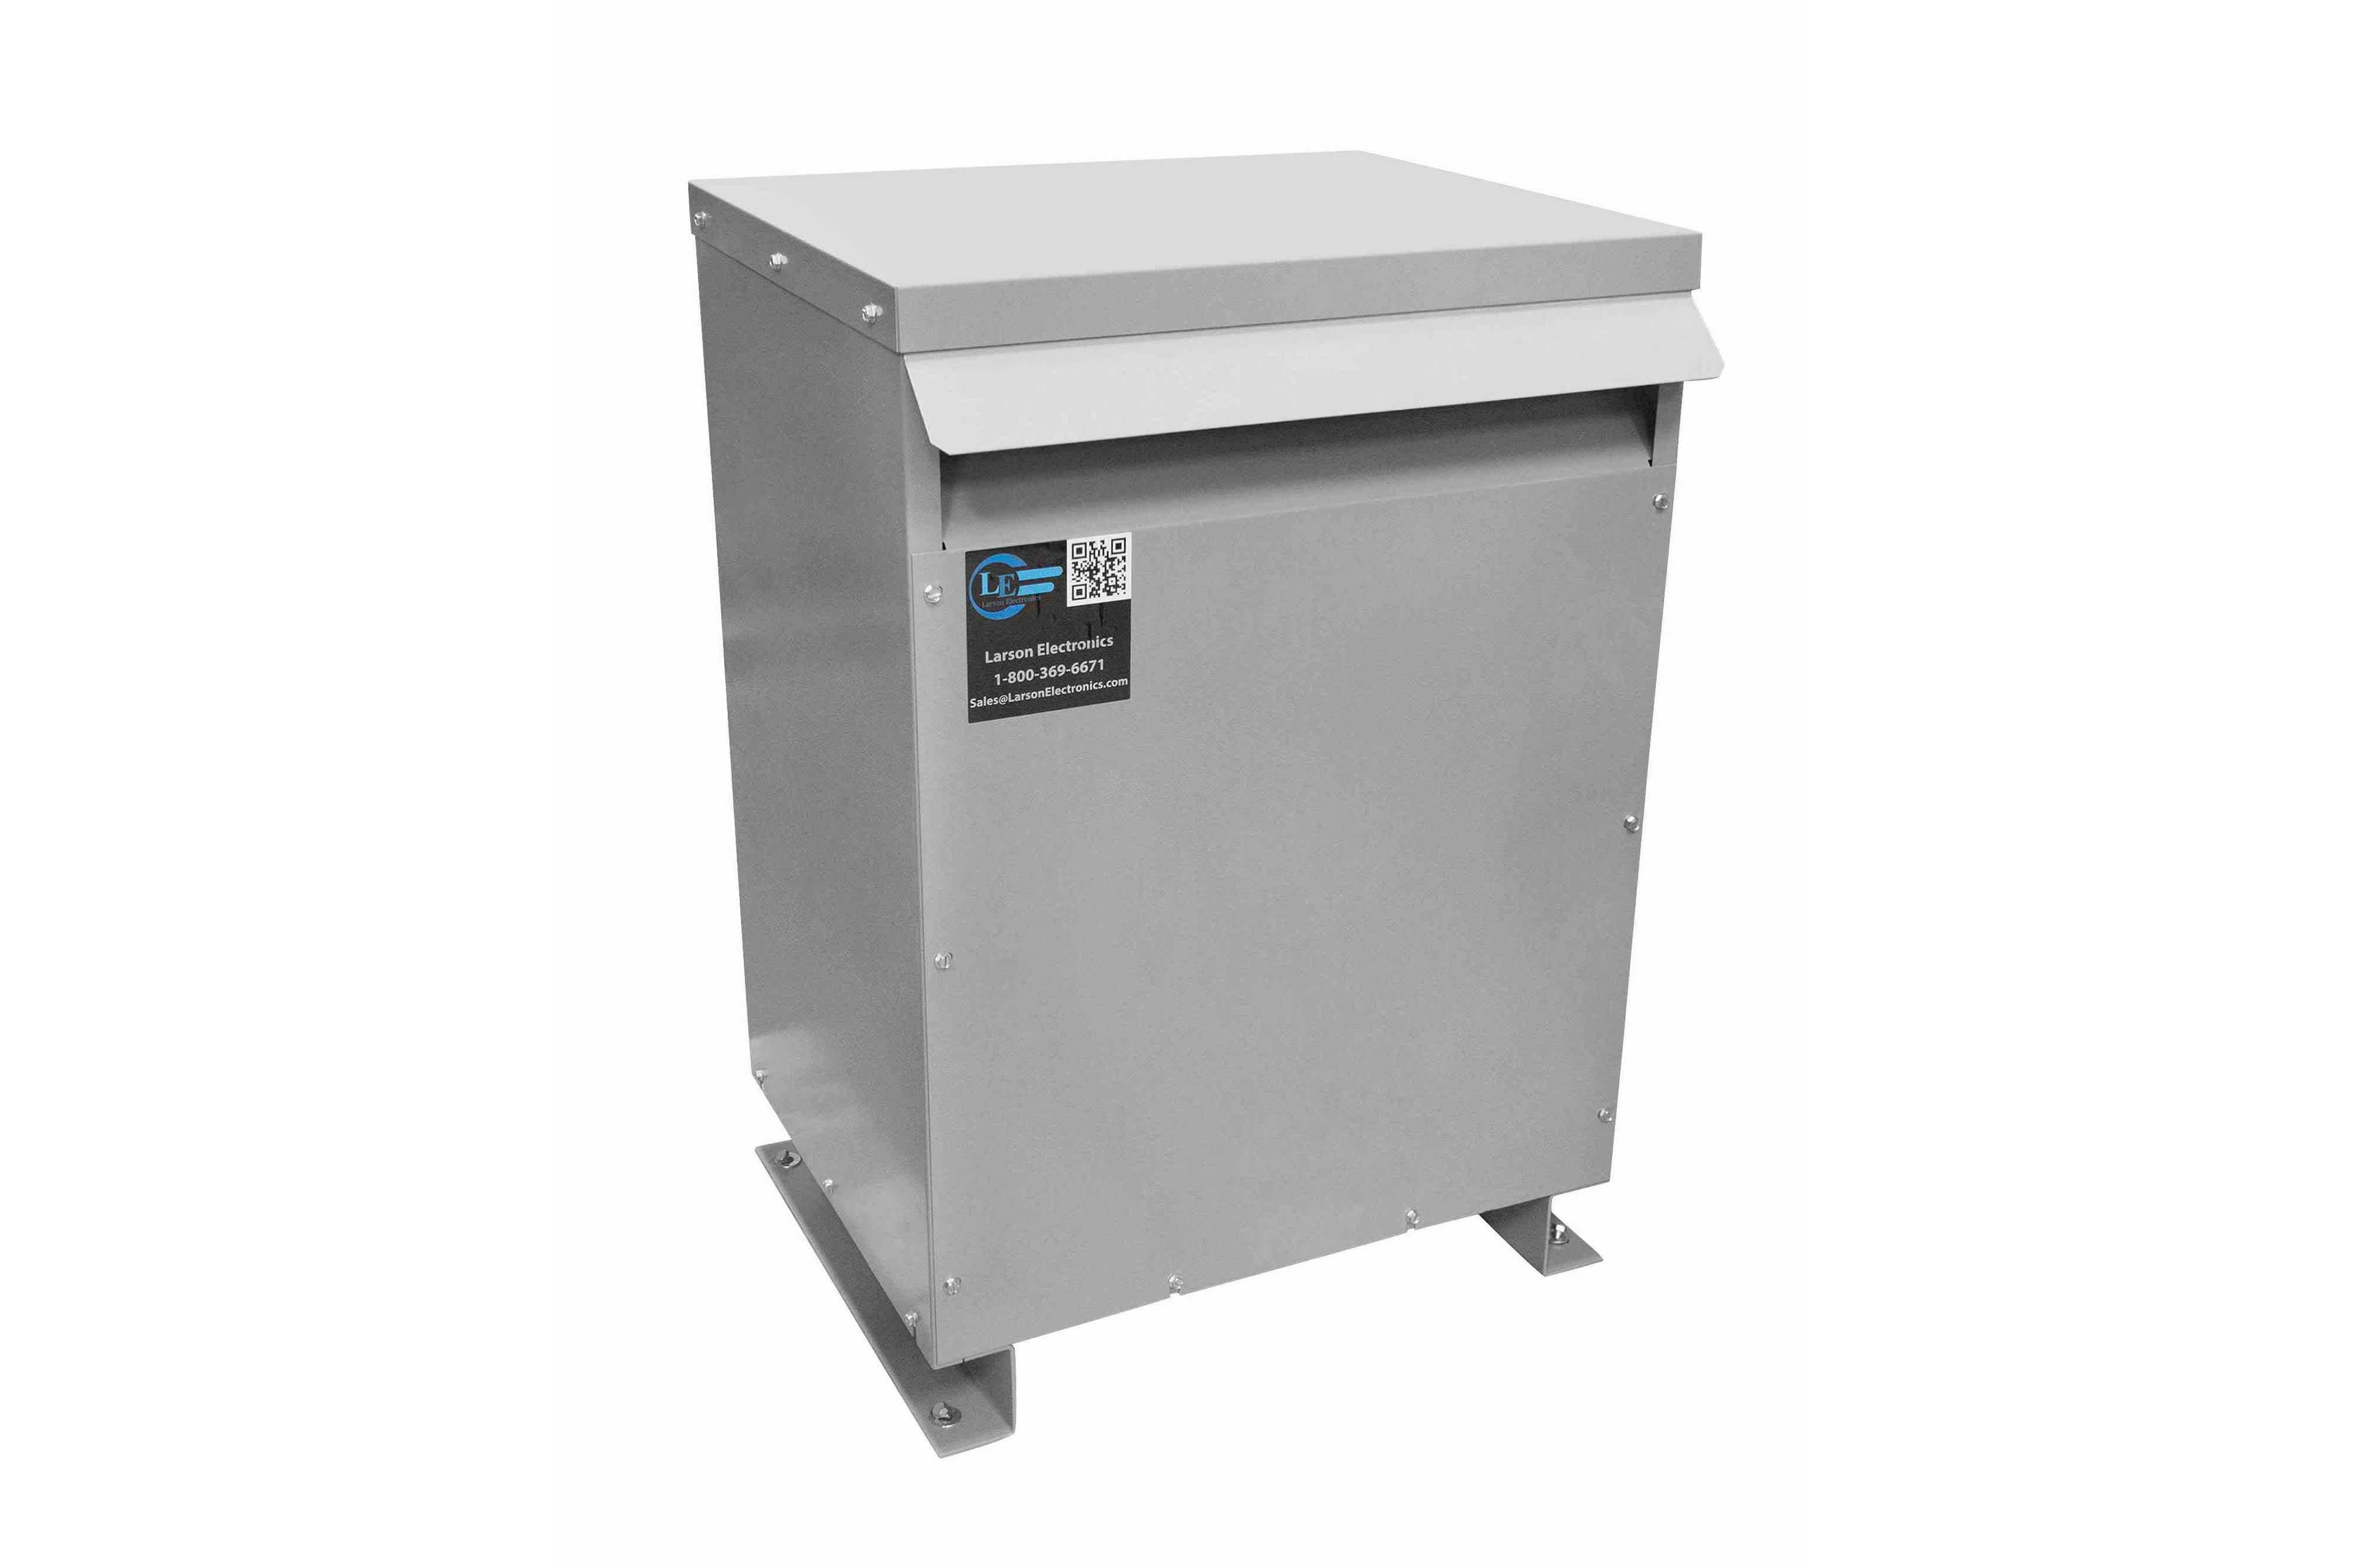 175 kVA 3PH Isolation Transformer, 230V Delta Primary, 480V Delta Secondary, N3R, Ventilated, 60 Hz